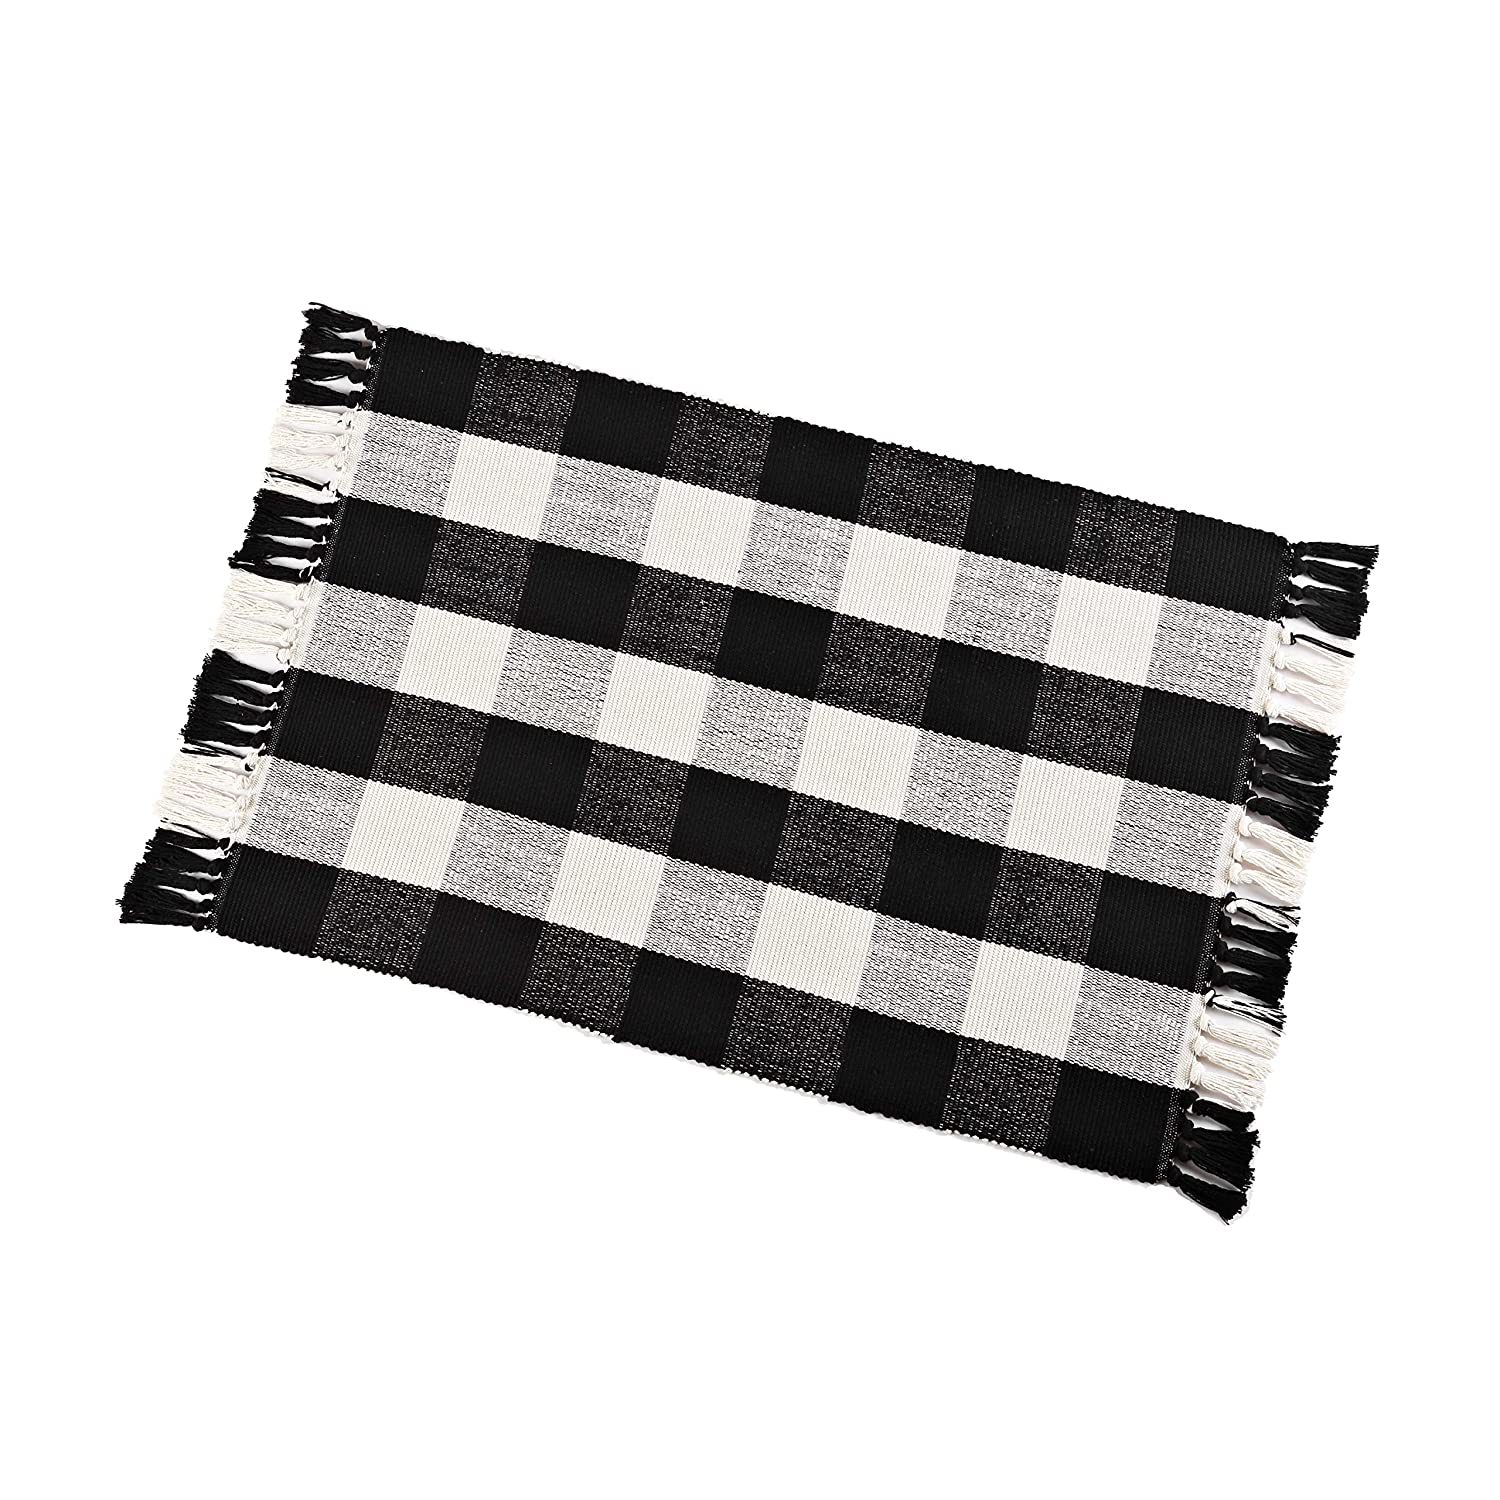 "Buffalo Check Rug Washable Checkered Cotton Mat Woven Black and White Plaid Striped Area Rug Tassel for Exterior Outdoor Kitchen Living Room Bathroom Decor,23.6""x35.4"""